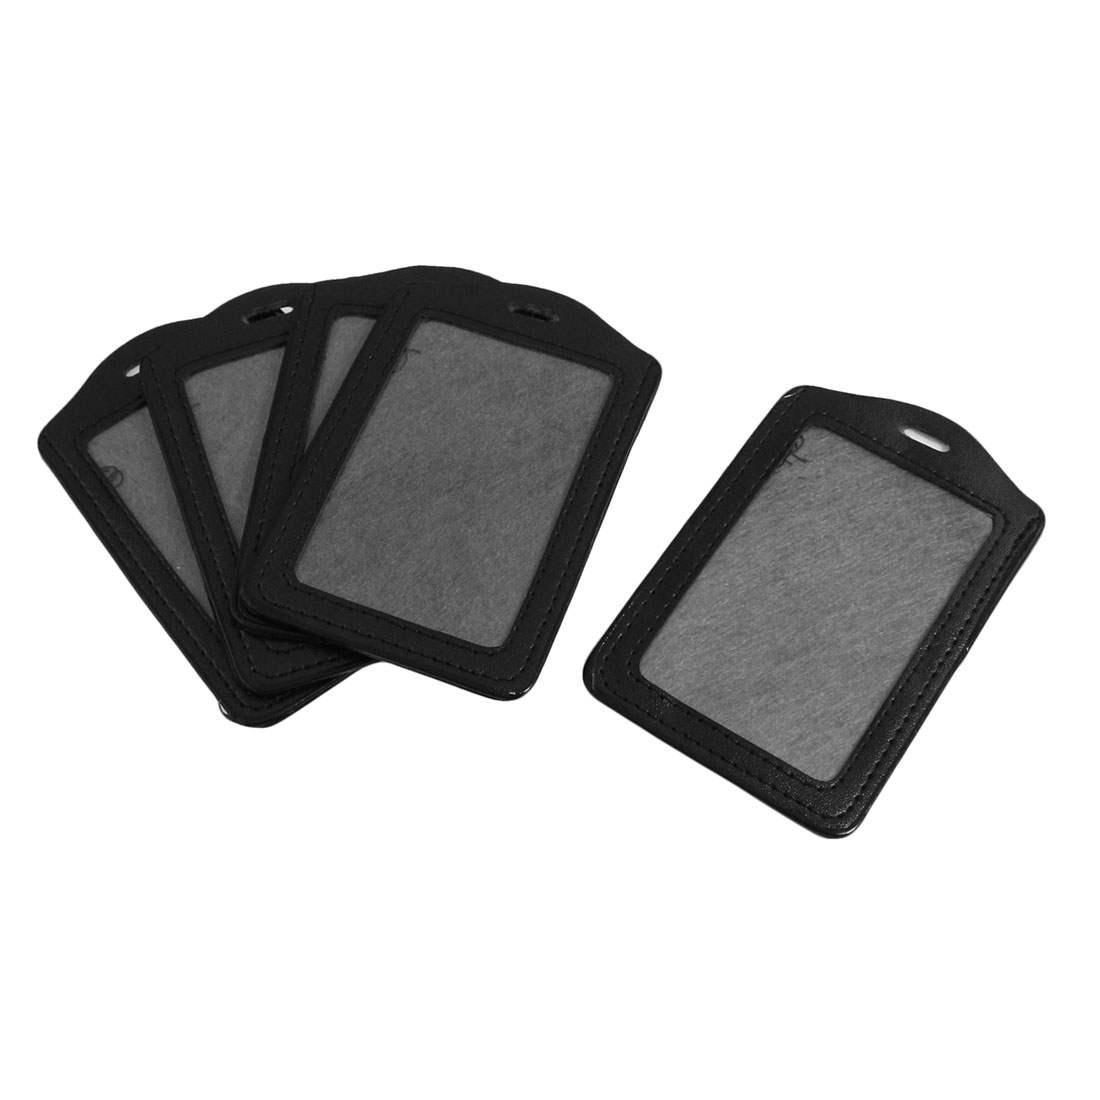 5 Pcs Black Faux Leather Vertical Design Name Badge ID Card Holder